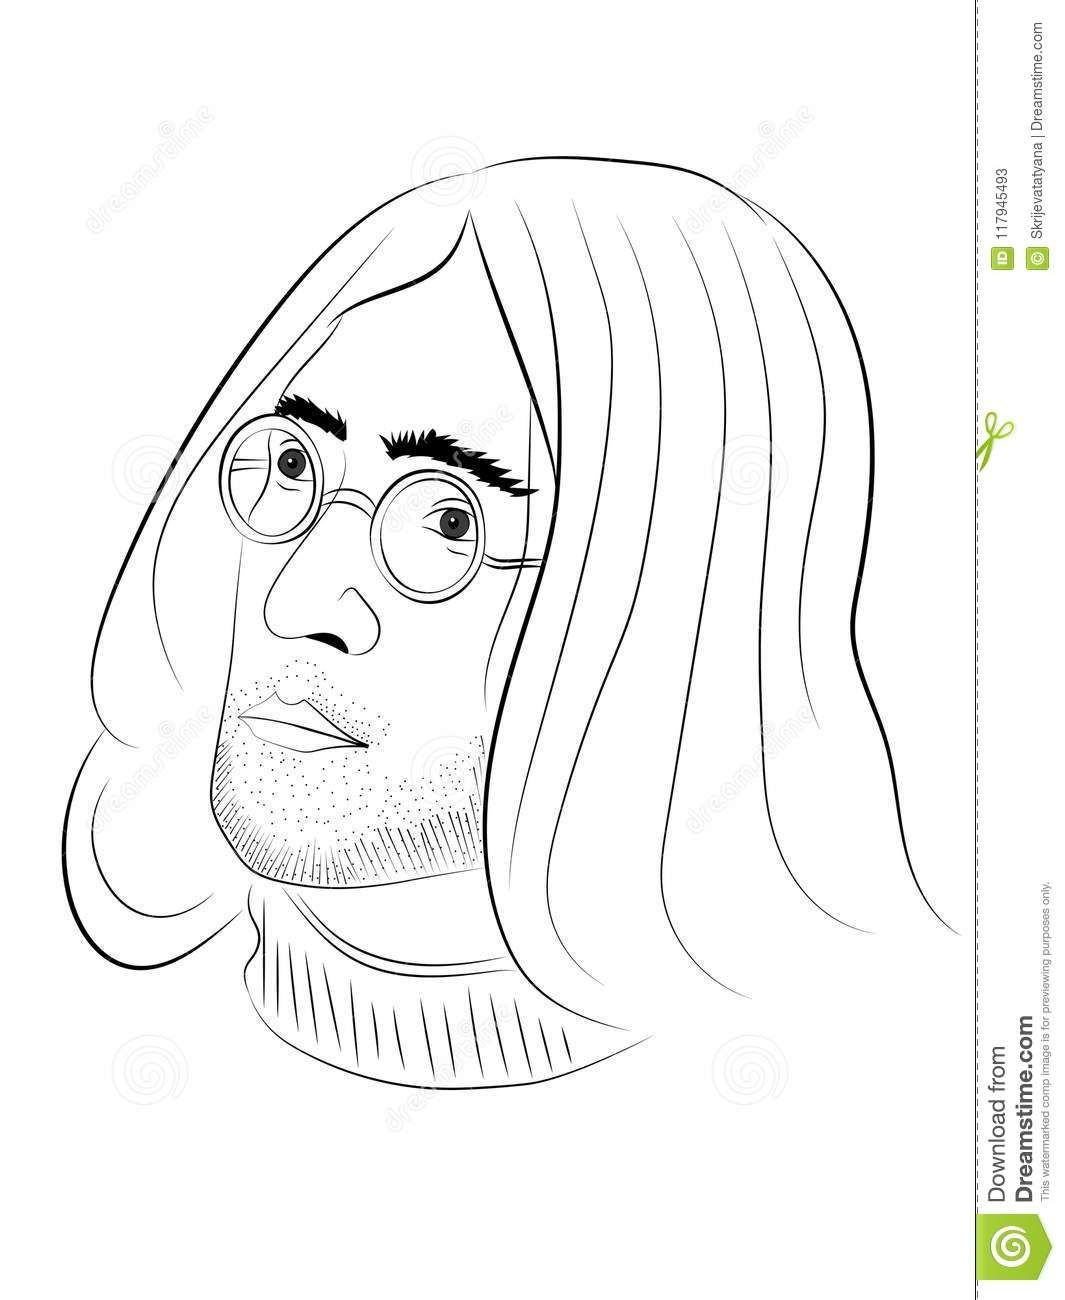 John Lennon Glasses Stock Illustrations 21 John Lennon Glasses Stock Illustrations Vectors Clipart Dreamstime